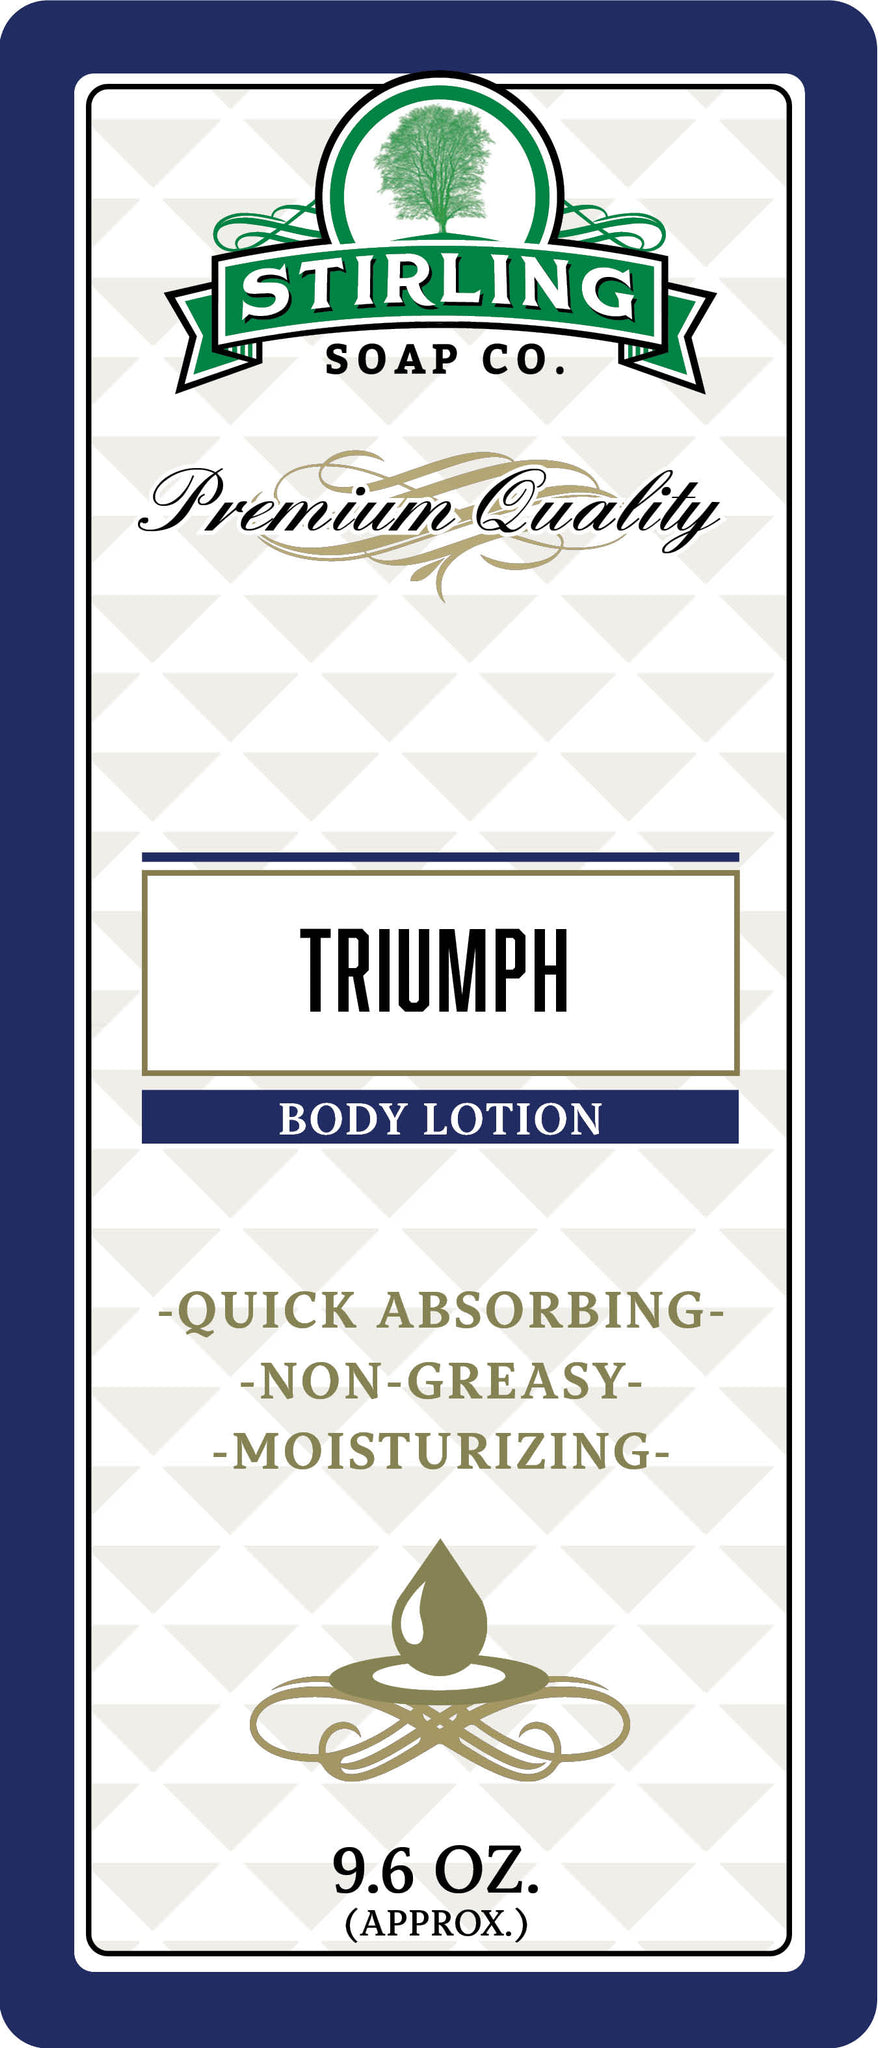 Triumph - Body Lotion